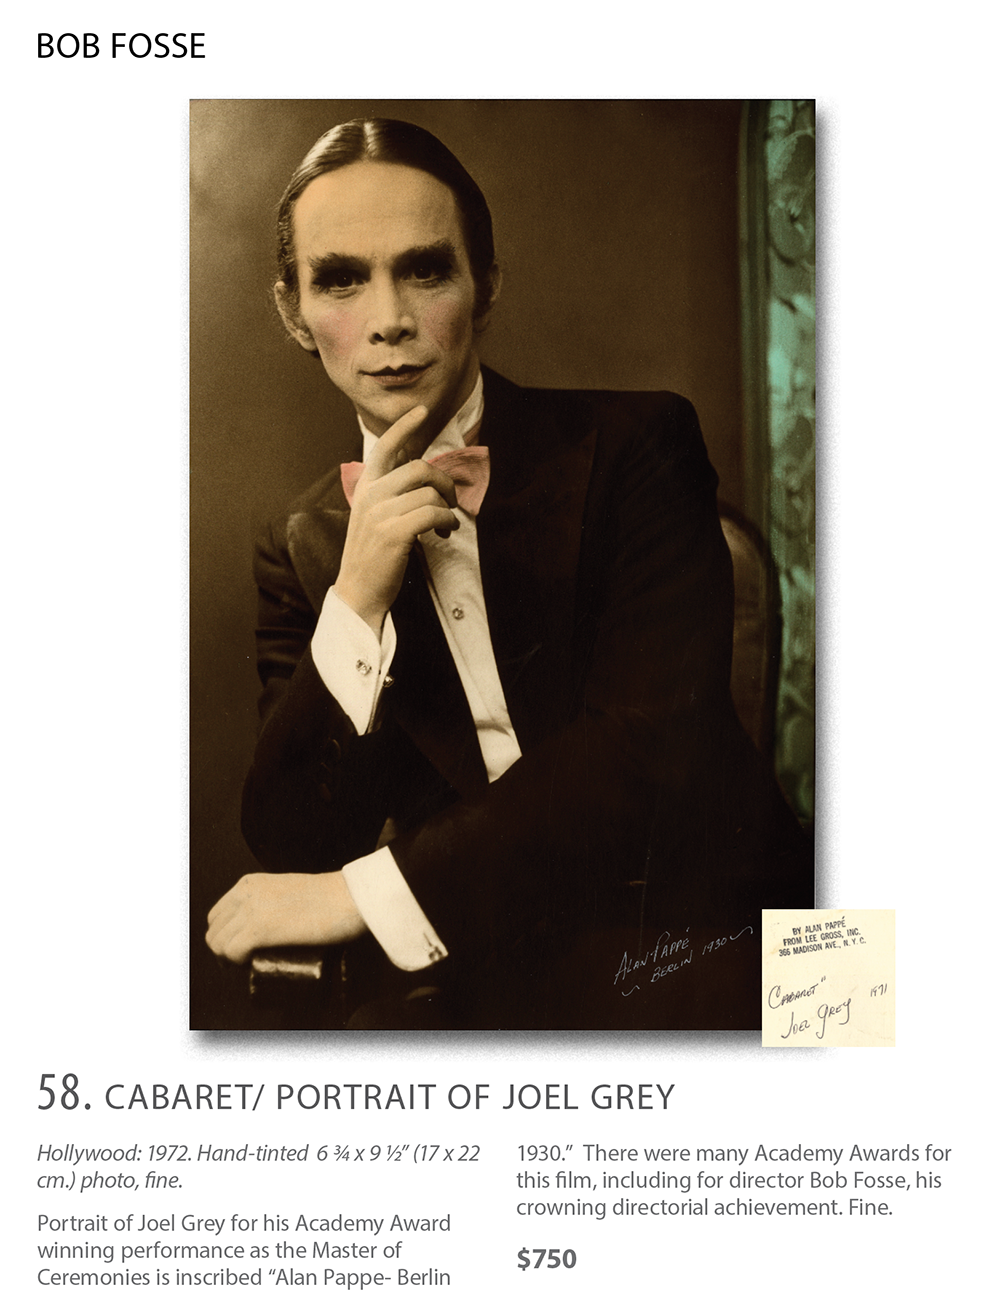 Portrait of Joel Grey as MC in Cabaret